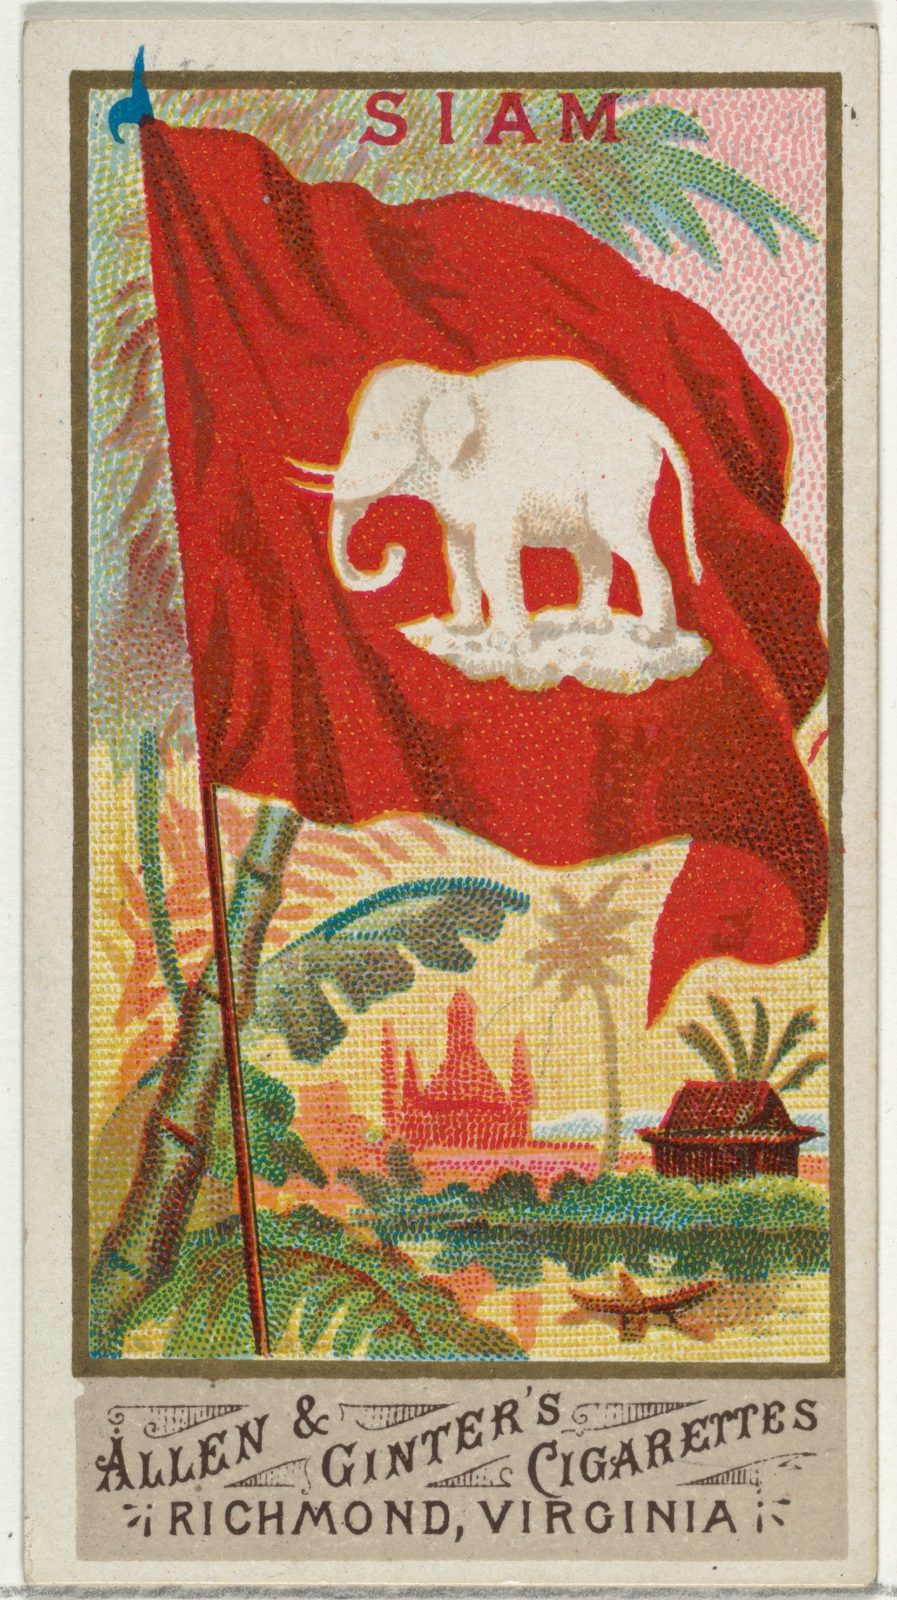 Siam, from Flags of All Nations, Series 1 (N9) for Allen & Ginter Cigarettes Brands